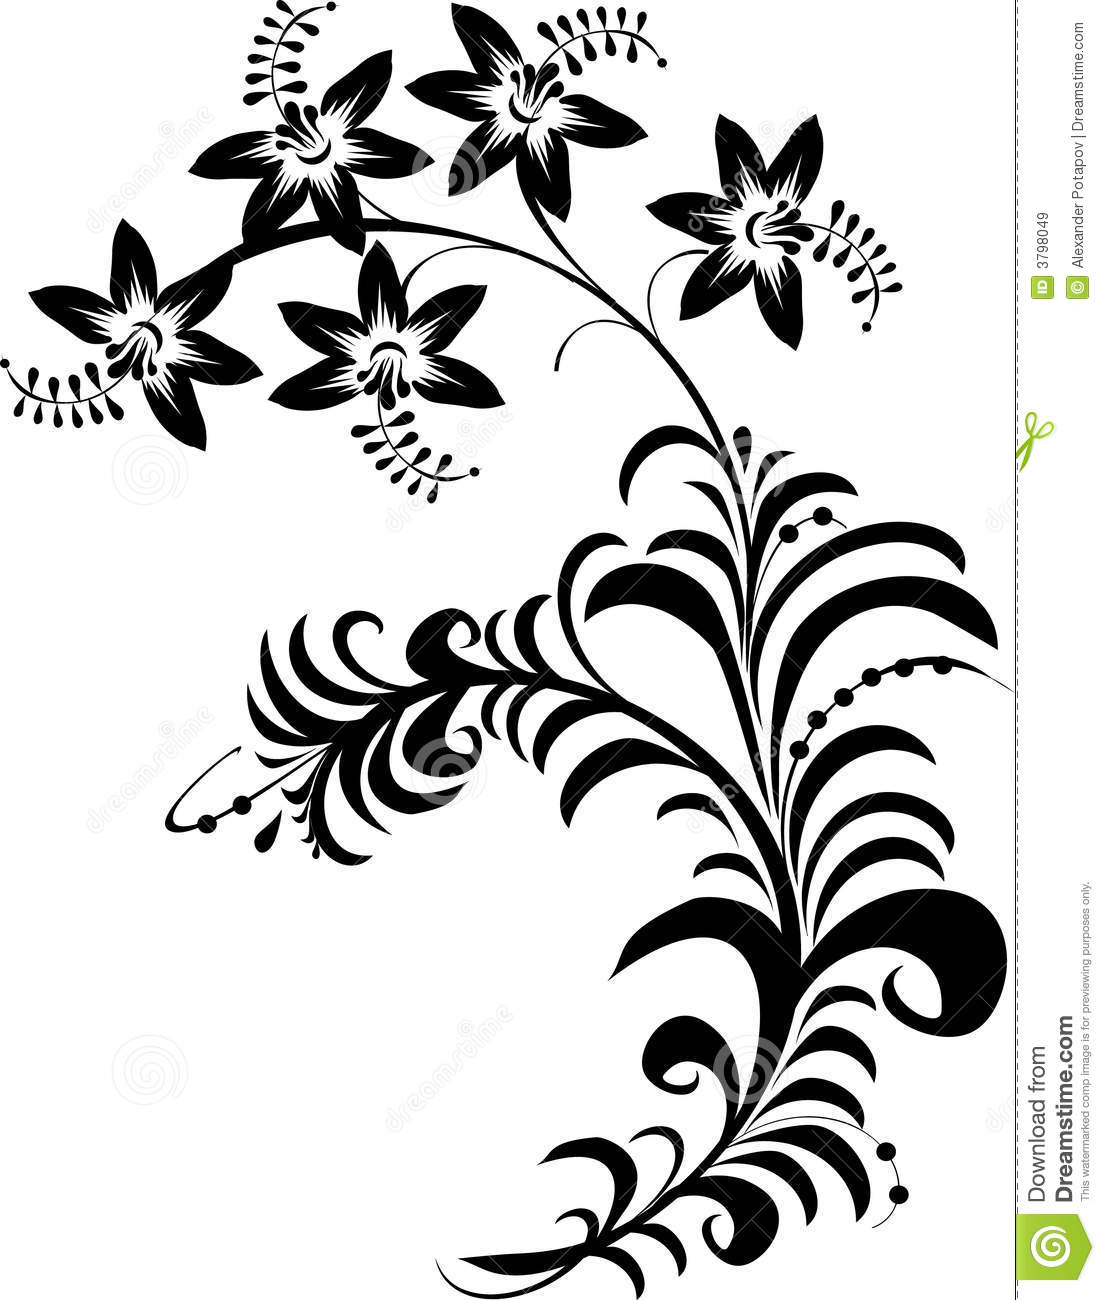 Black And White Line Drawing Flowers : Black and white flower graphics images